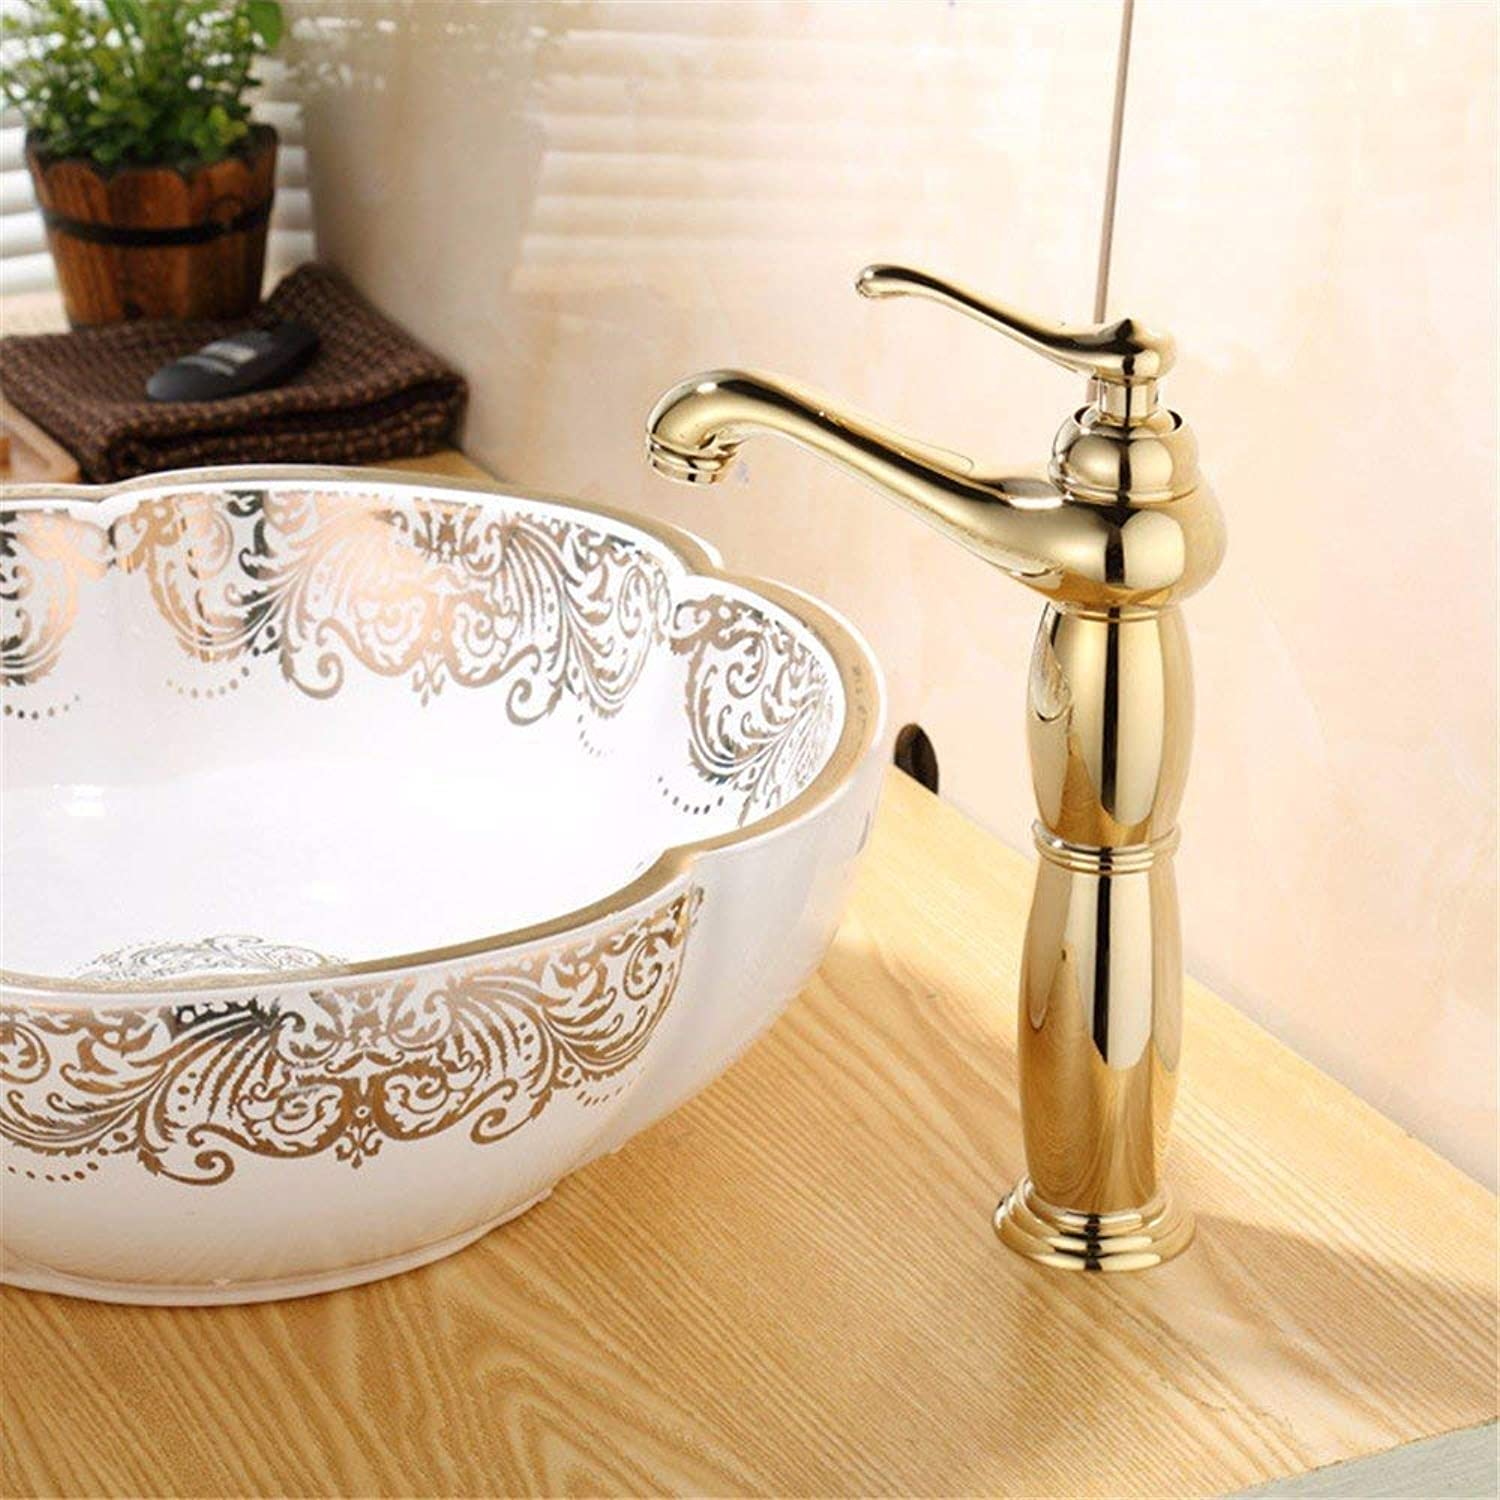 360° redating Faucet Retro Faucet Above Counter Basin Basin Heightening Hot and Cold High Standard gold Plating